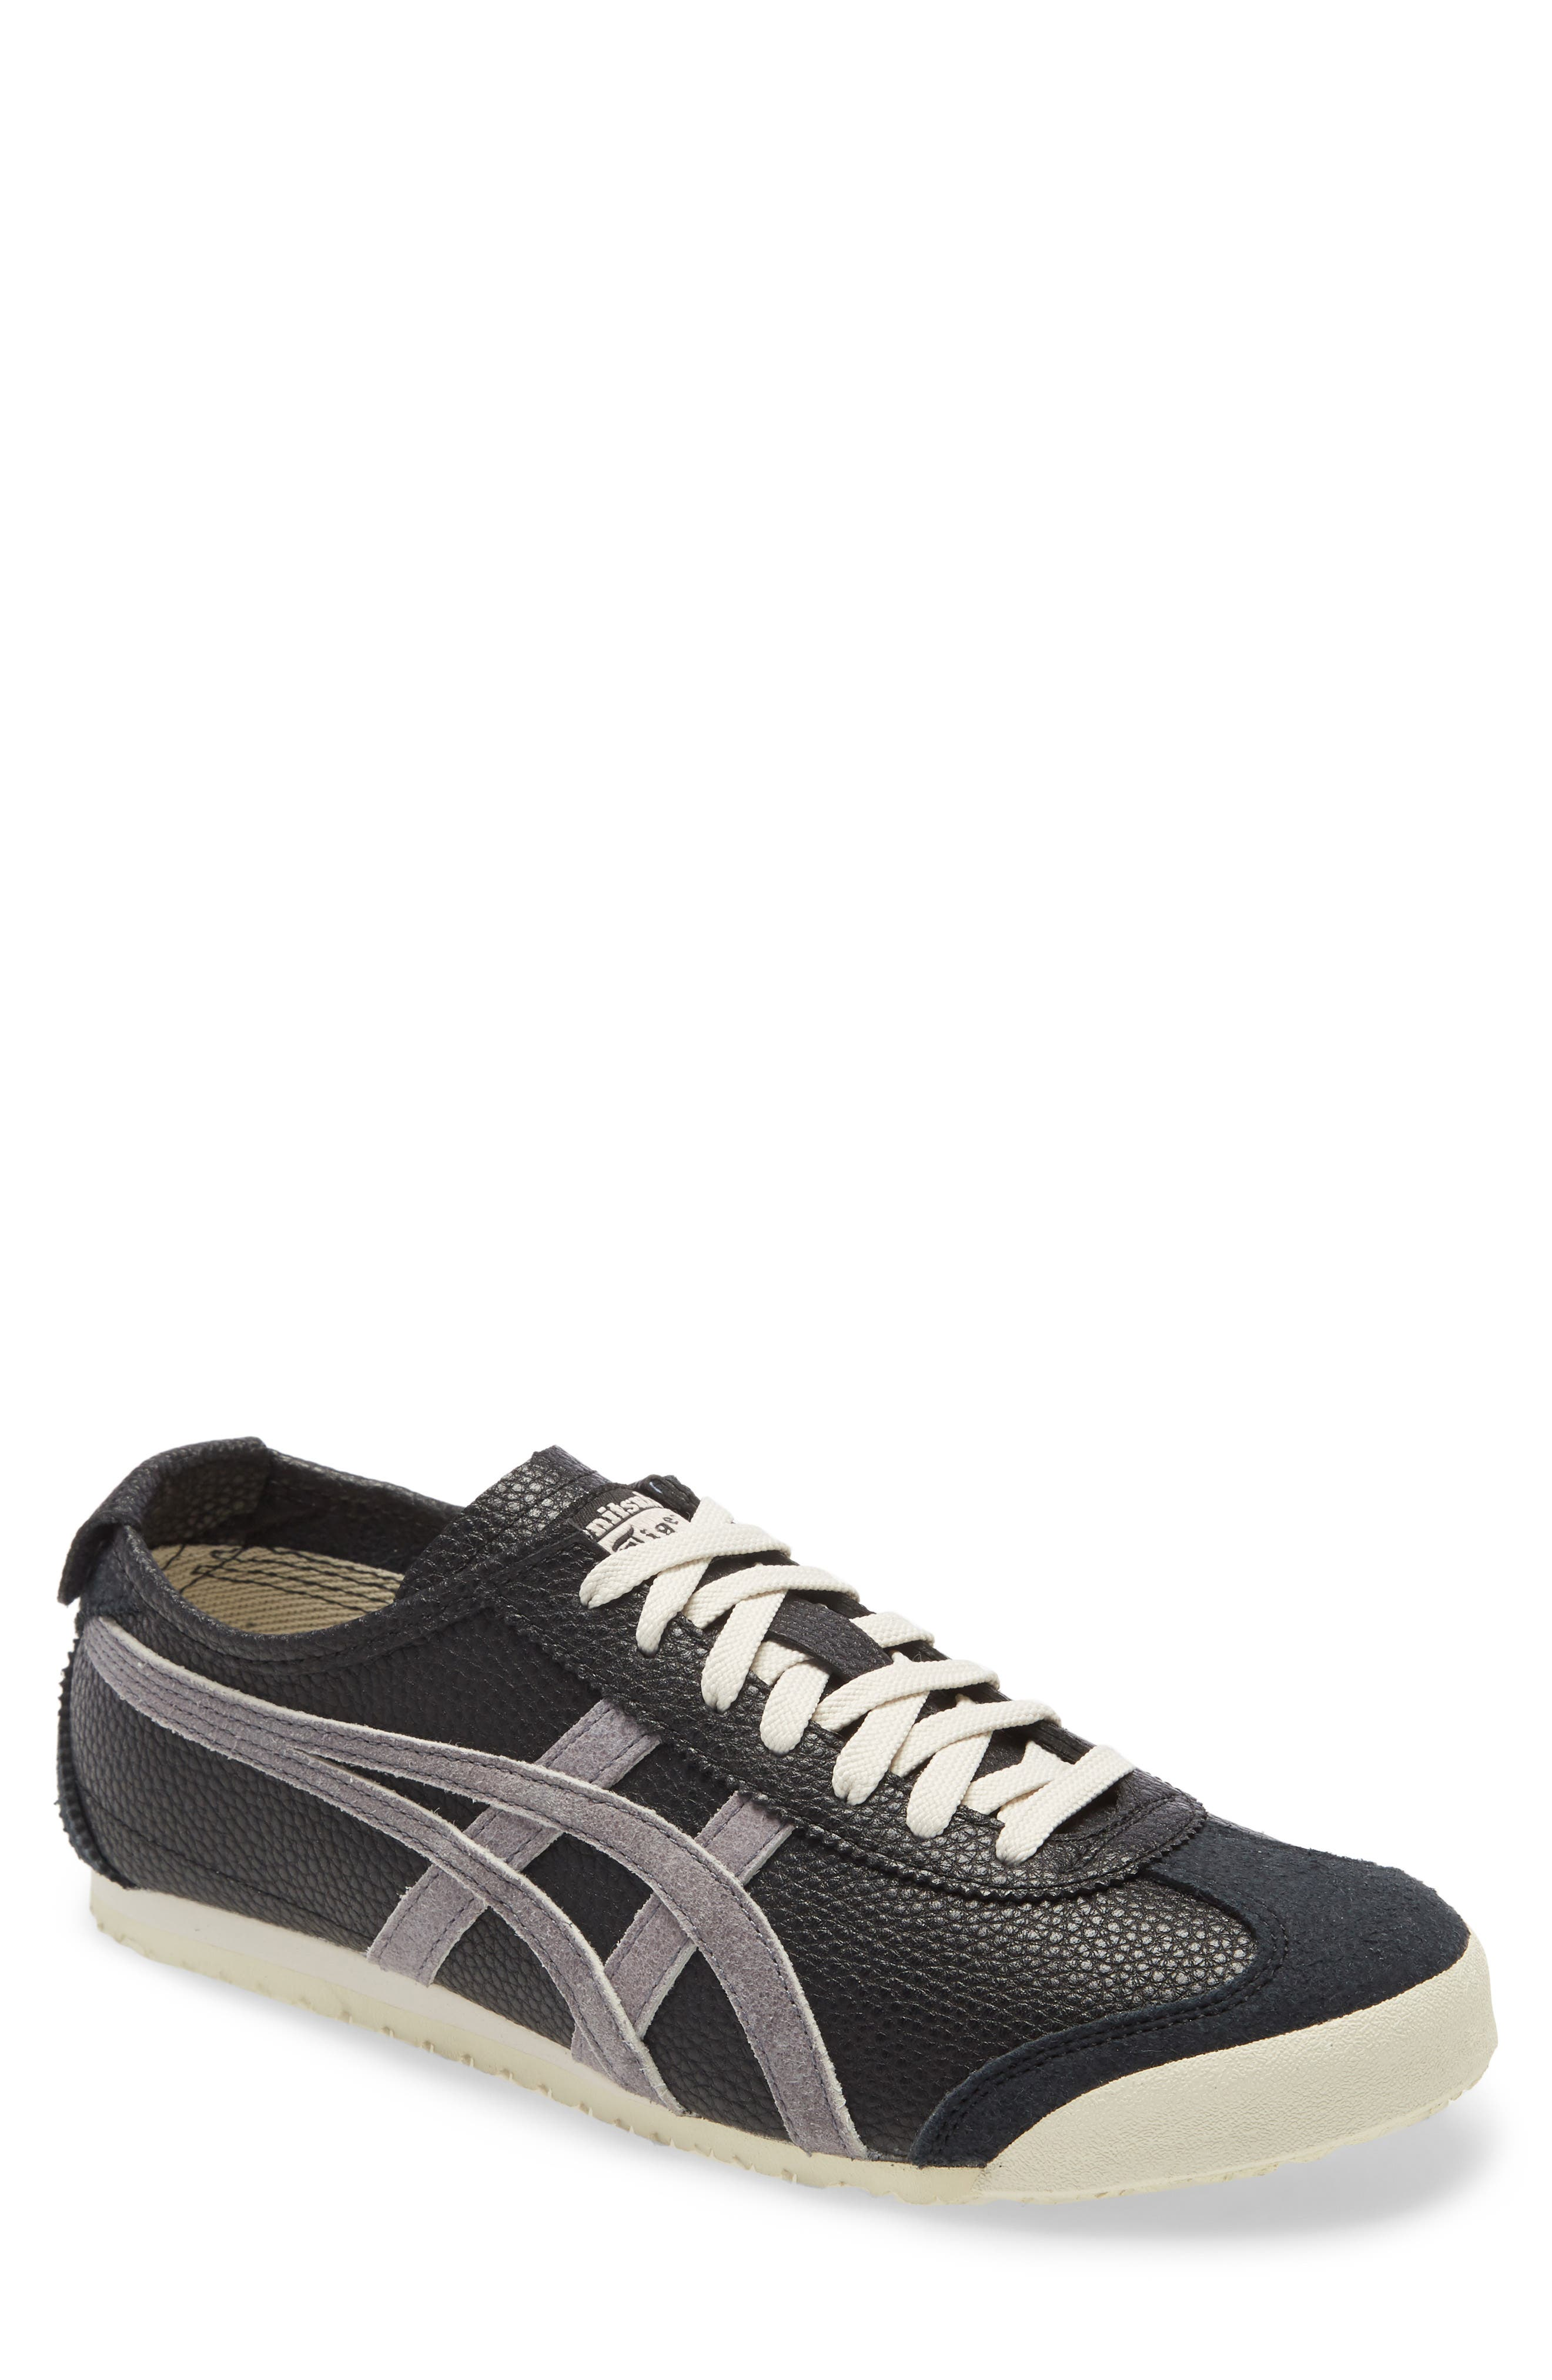 onitsuka tiger mexico 66 black and pink underwear video hombre